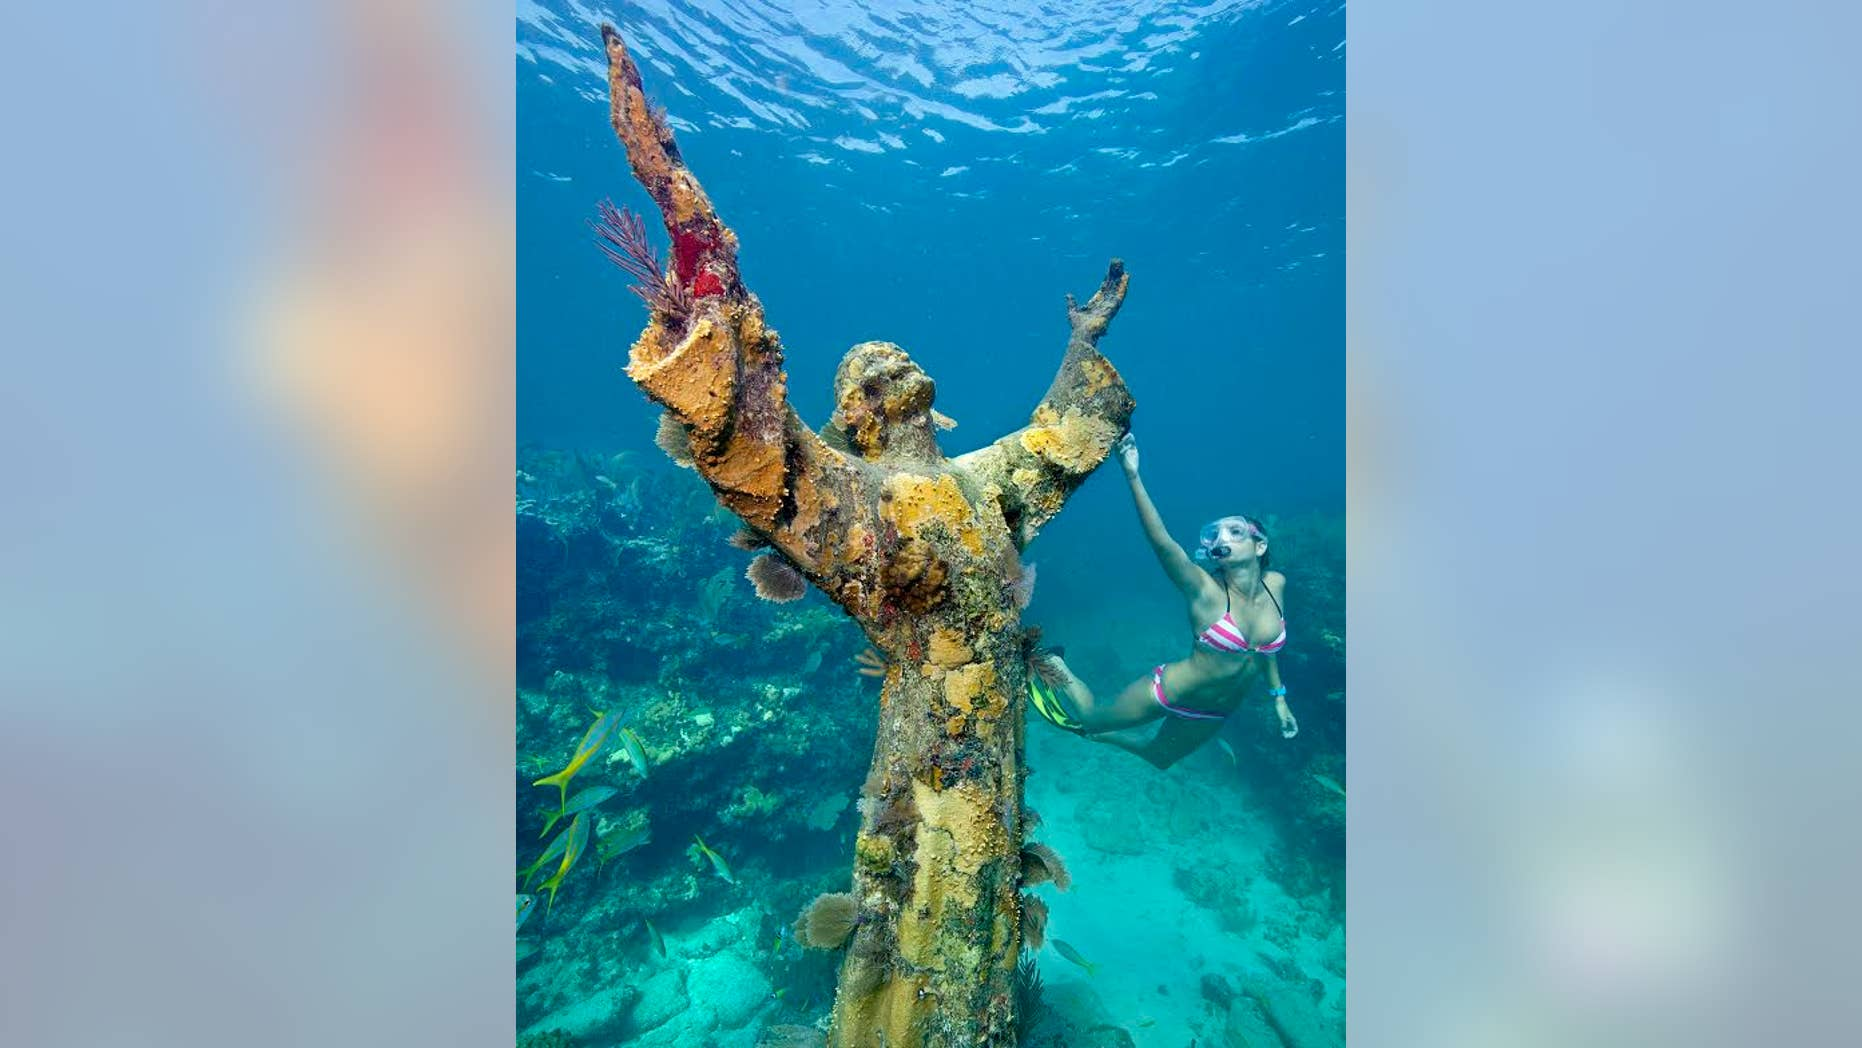 """Katherine Wieland snorkels by the """"Christ of the Abyss"""" statue, an underwater icon for John Pennekamp Coral Reef State park, off Key Largo, Fla. Named after a former Miami newspaper editor, Pennekamp is the nation's first underwater preserve."""